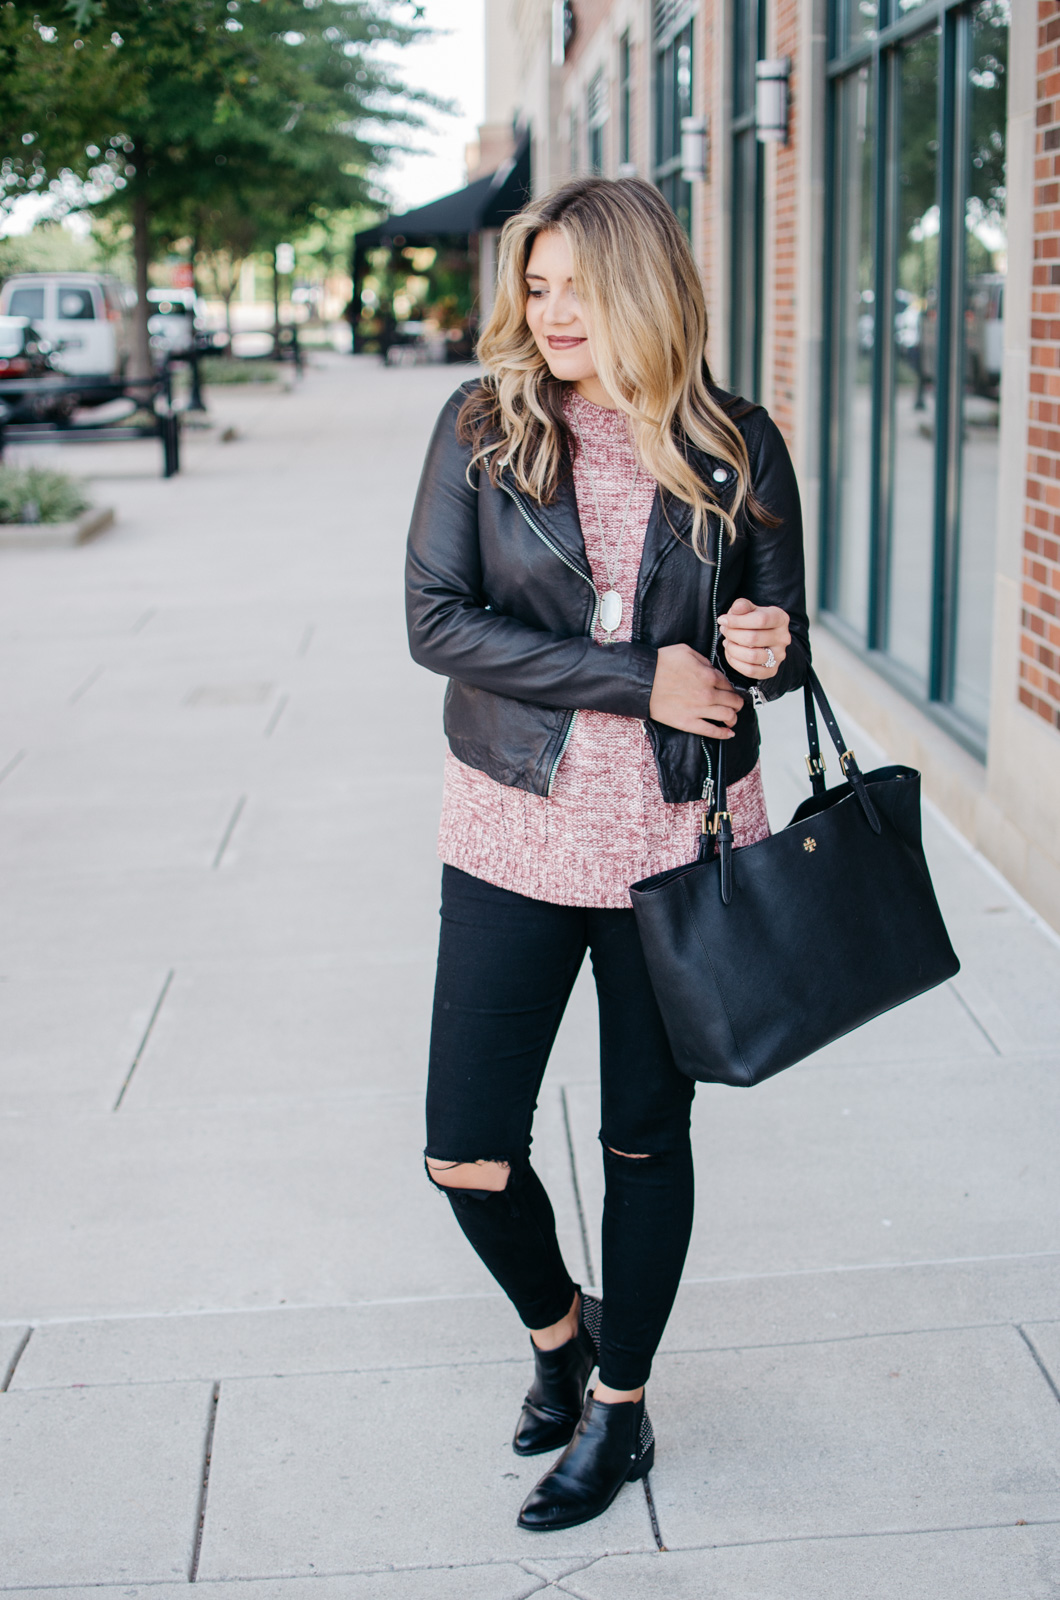 leather jacket sweater outfit - how to wear a sweater with a leather jacket | For more Fall outfit ideas, click through to bylaurenm.com!